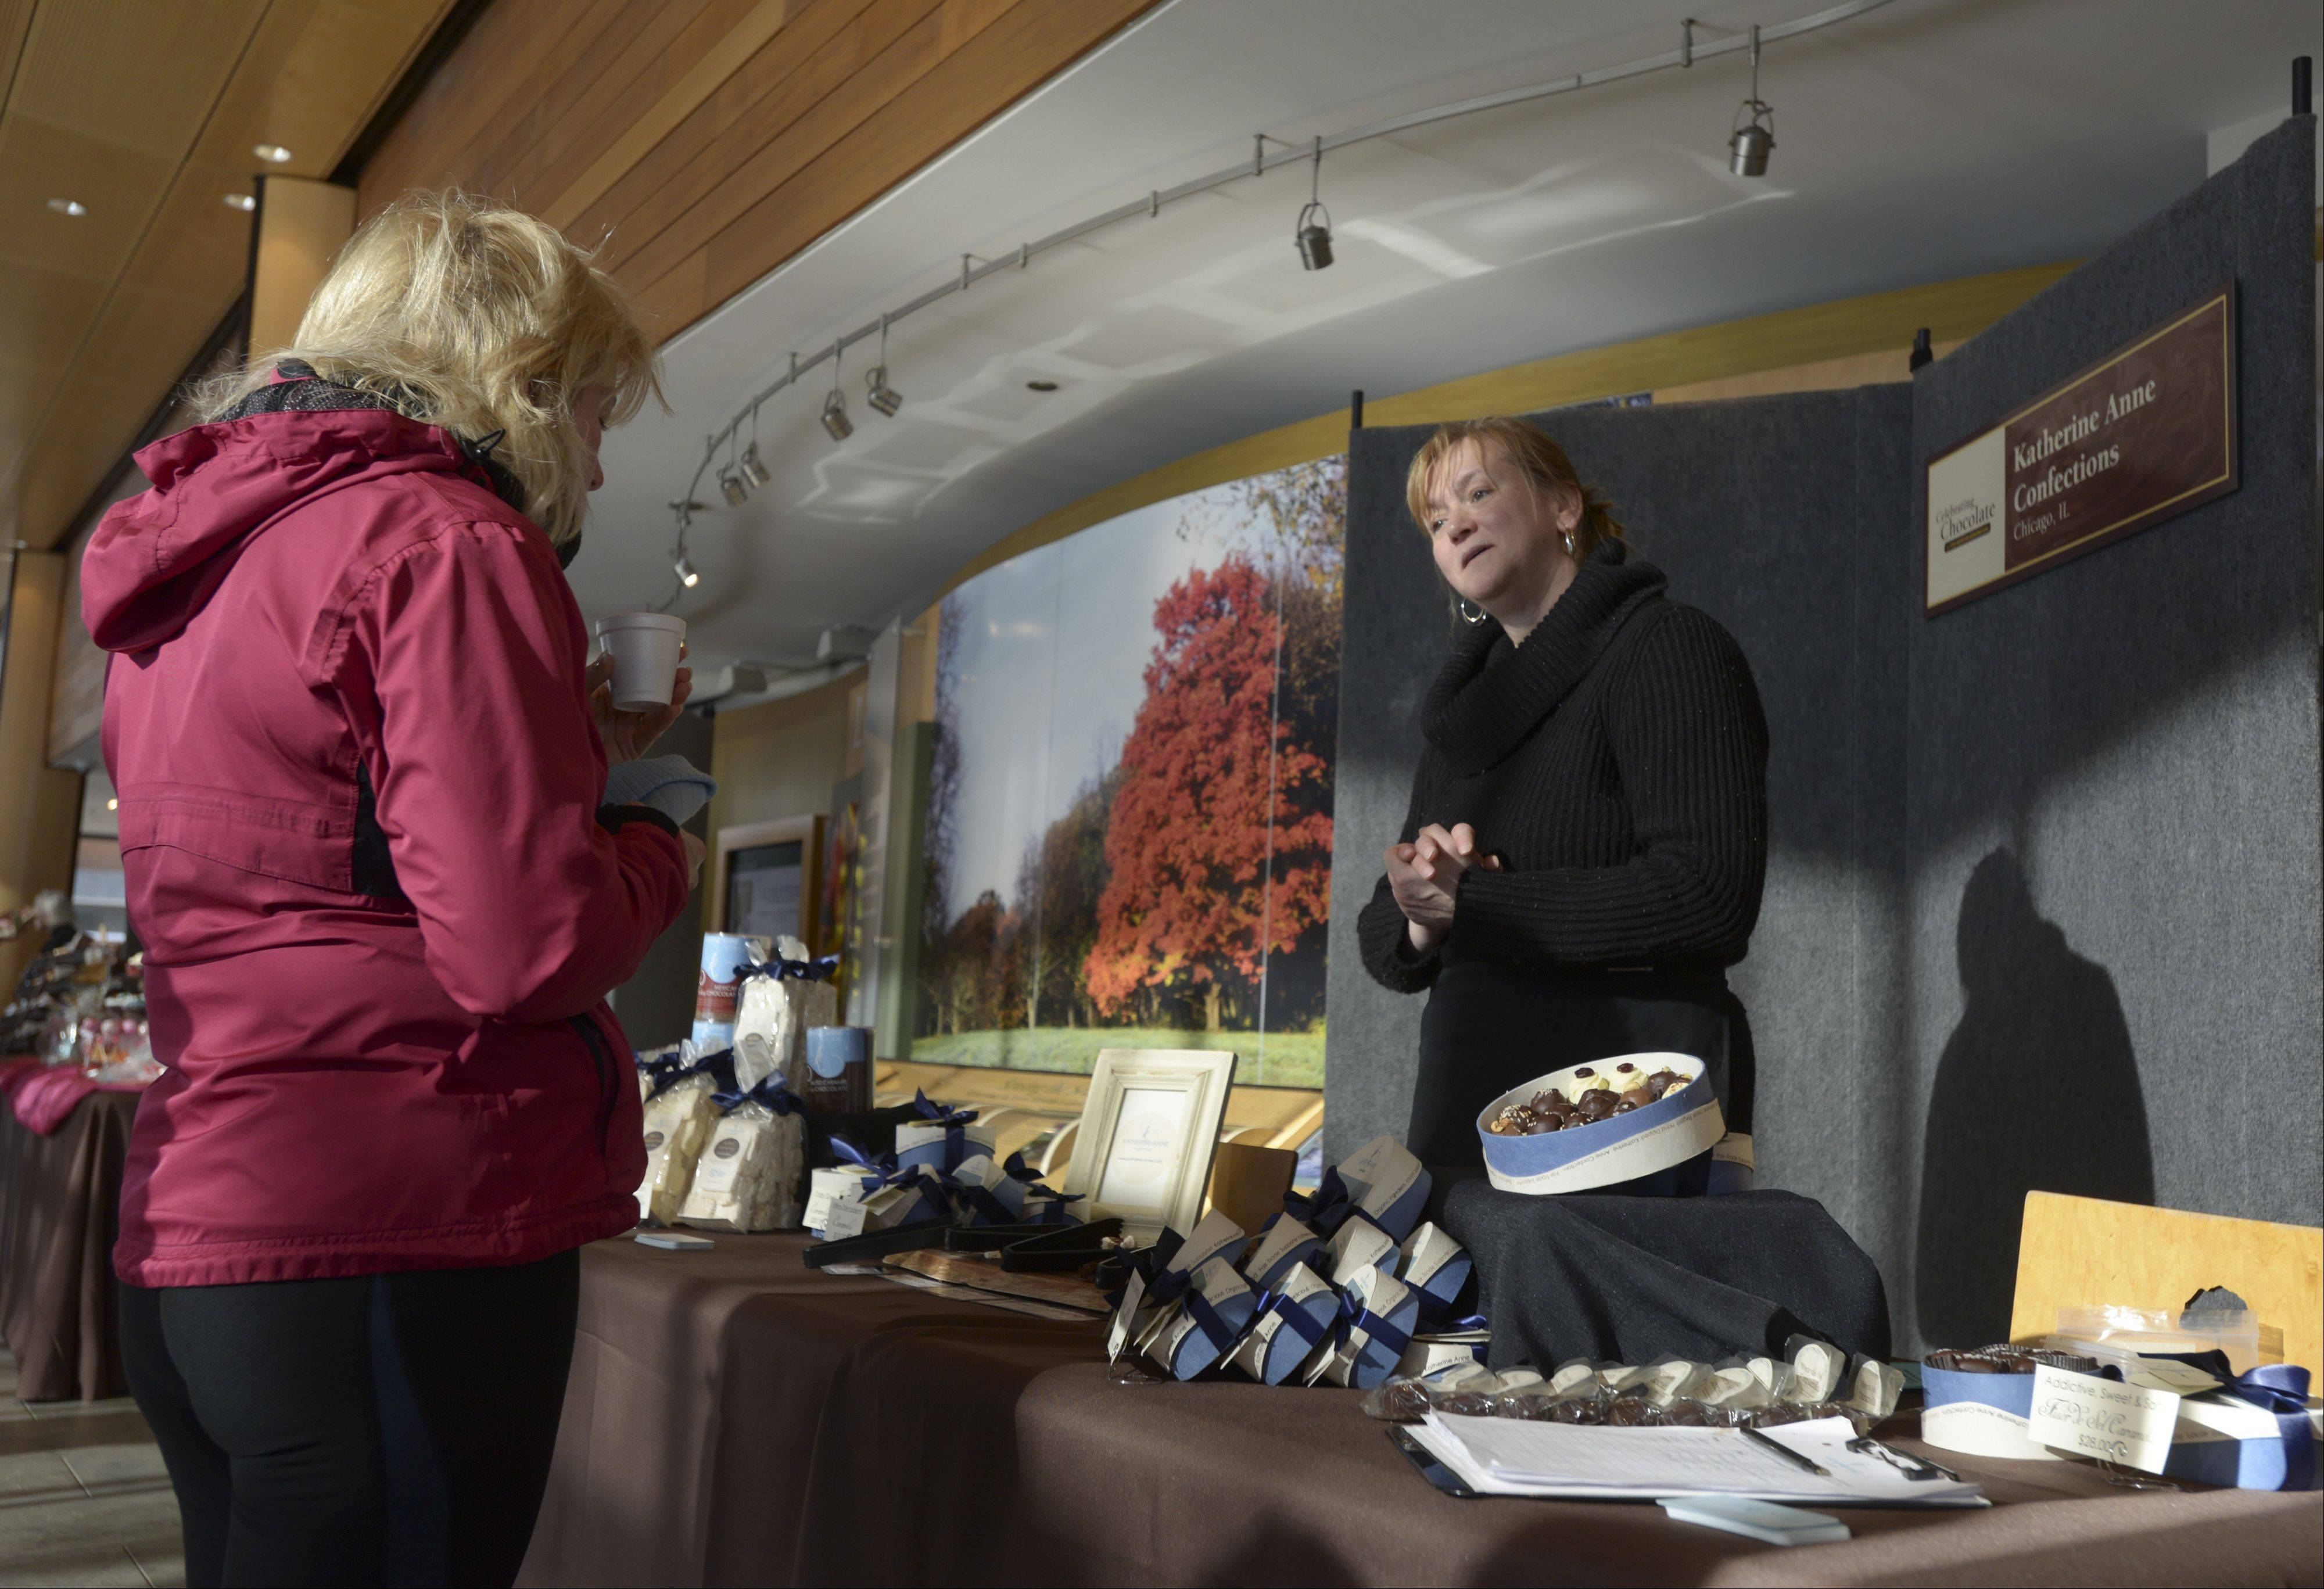 Patty Formosa of Katherine Anne Confections in Chicago hands out samples Sunday during the Morton Arboretum's Chocolate Expo and Market. The event featured nearly 20 vendors offering different chocolate concoctions.